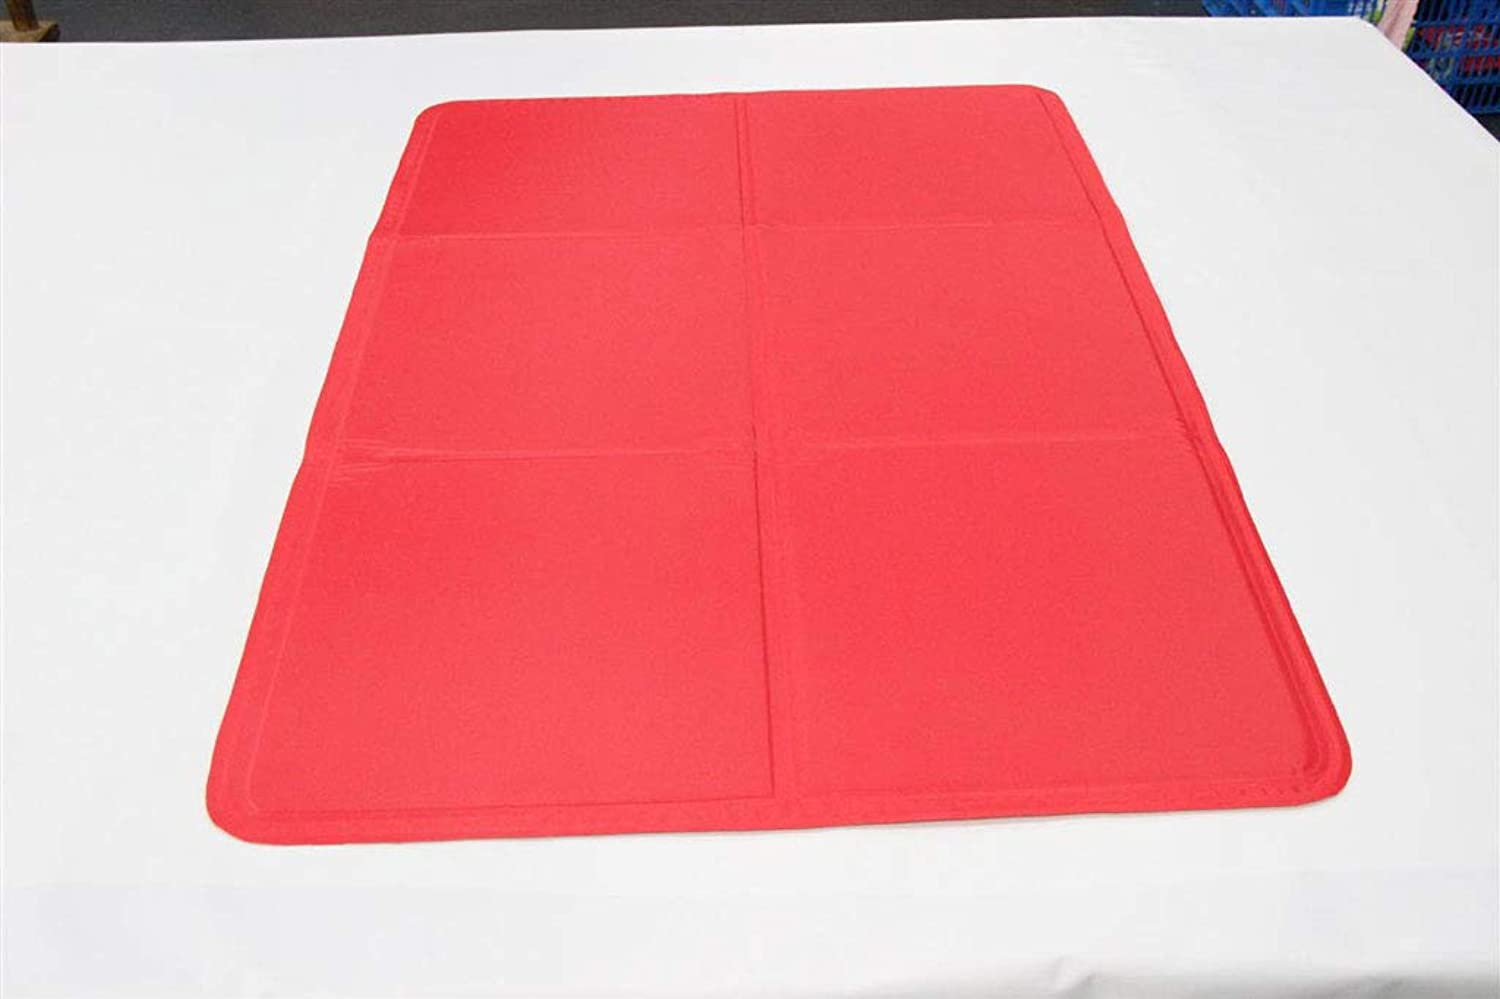 GR&ST Pets Cool Mat Dogs Self Cooling NonToxic Gel Mat Pads Mattress Pet Cat Cool Beds Extra Large for Dog,Kennels and Beds,Red 60  90CM